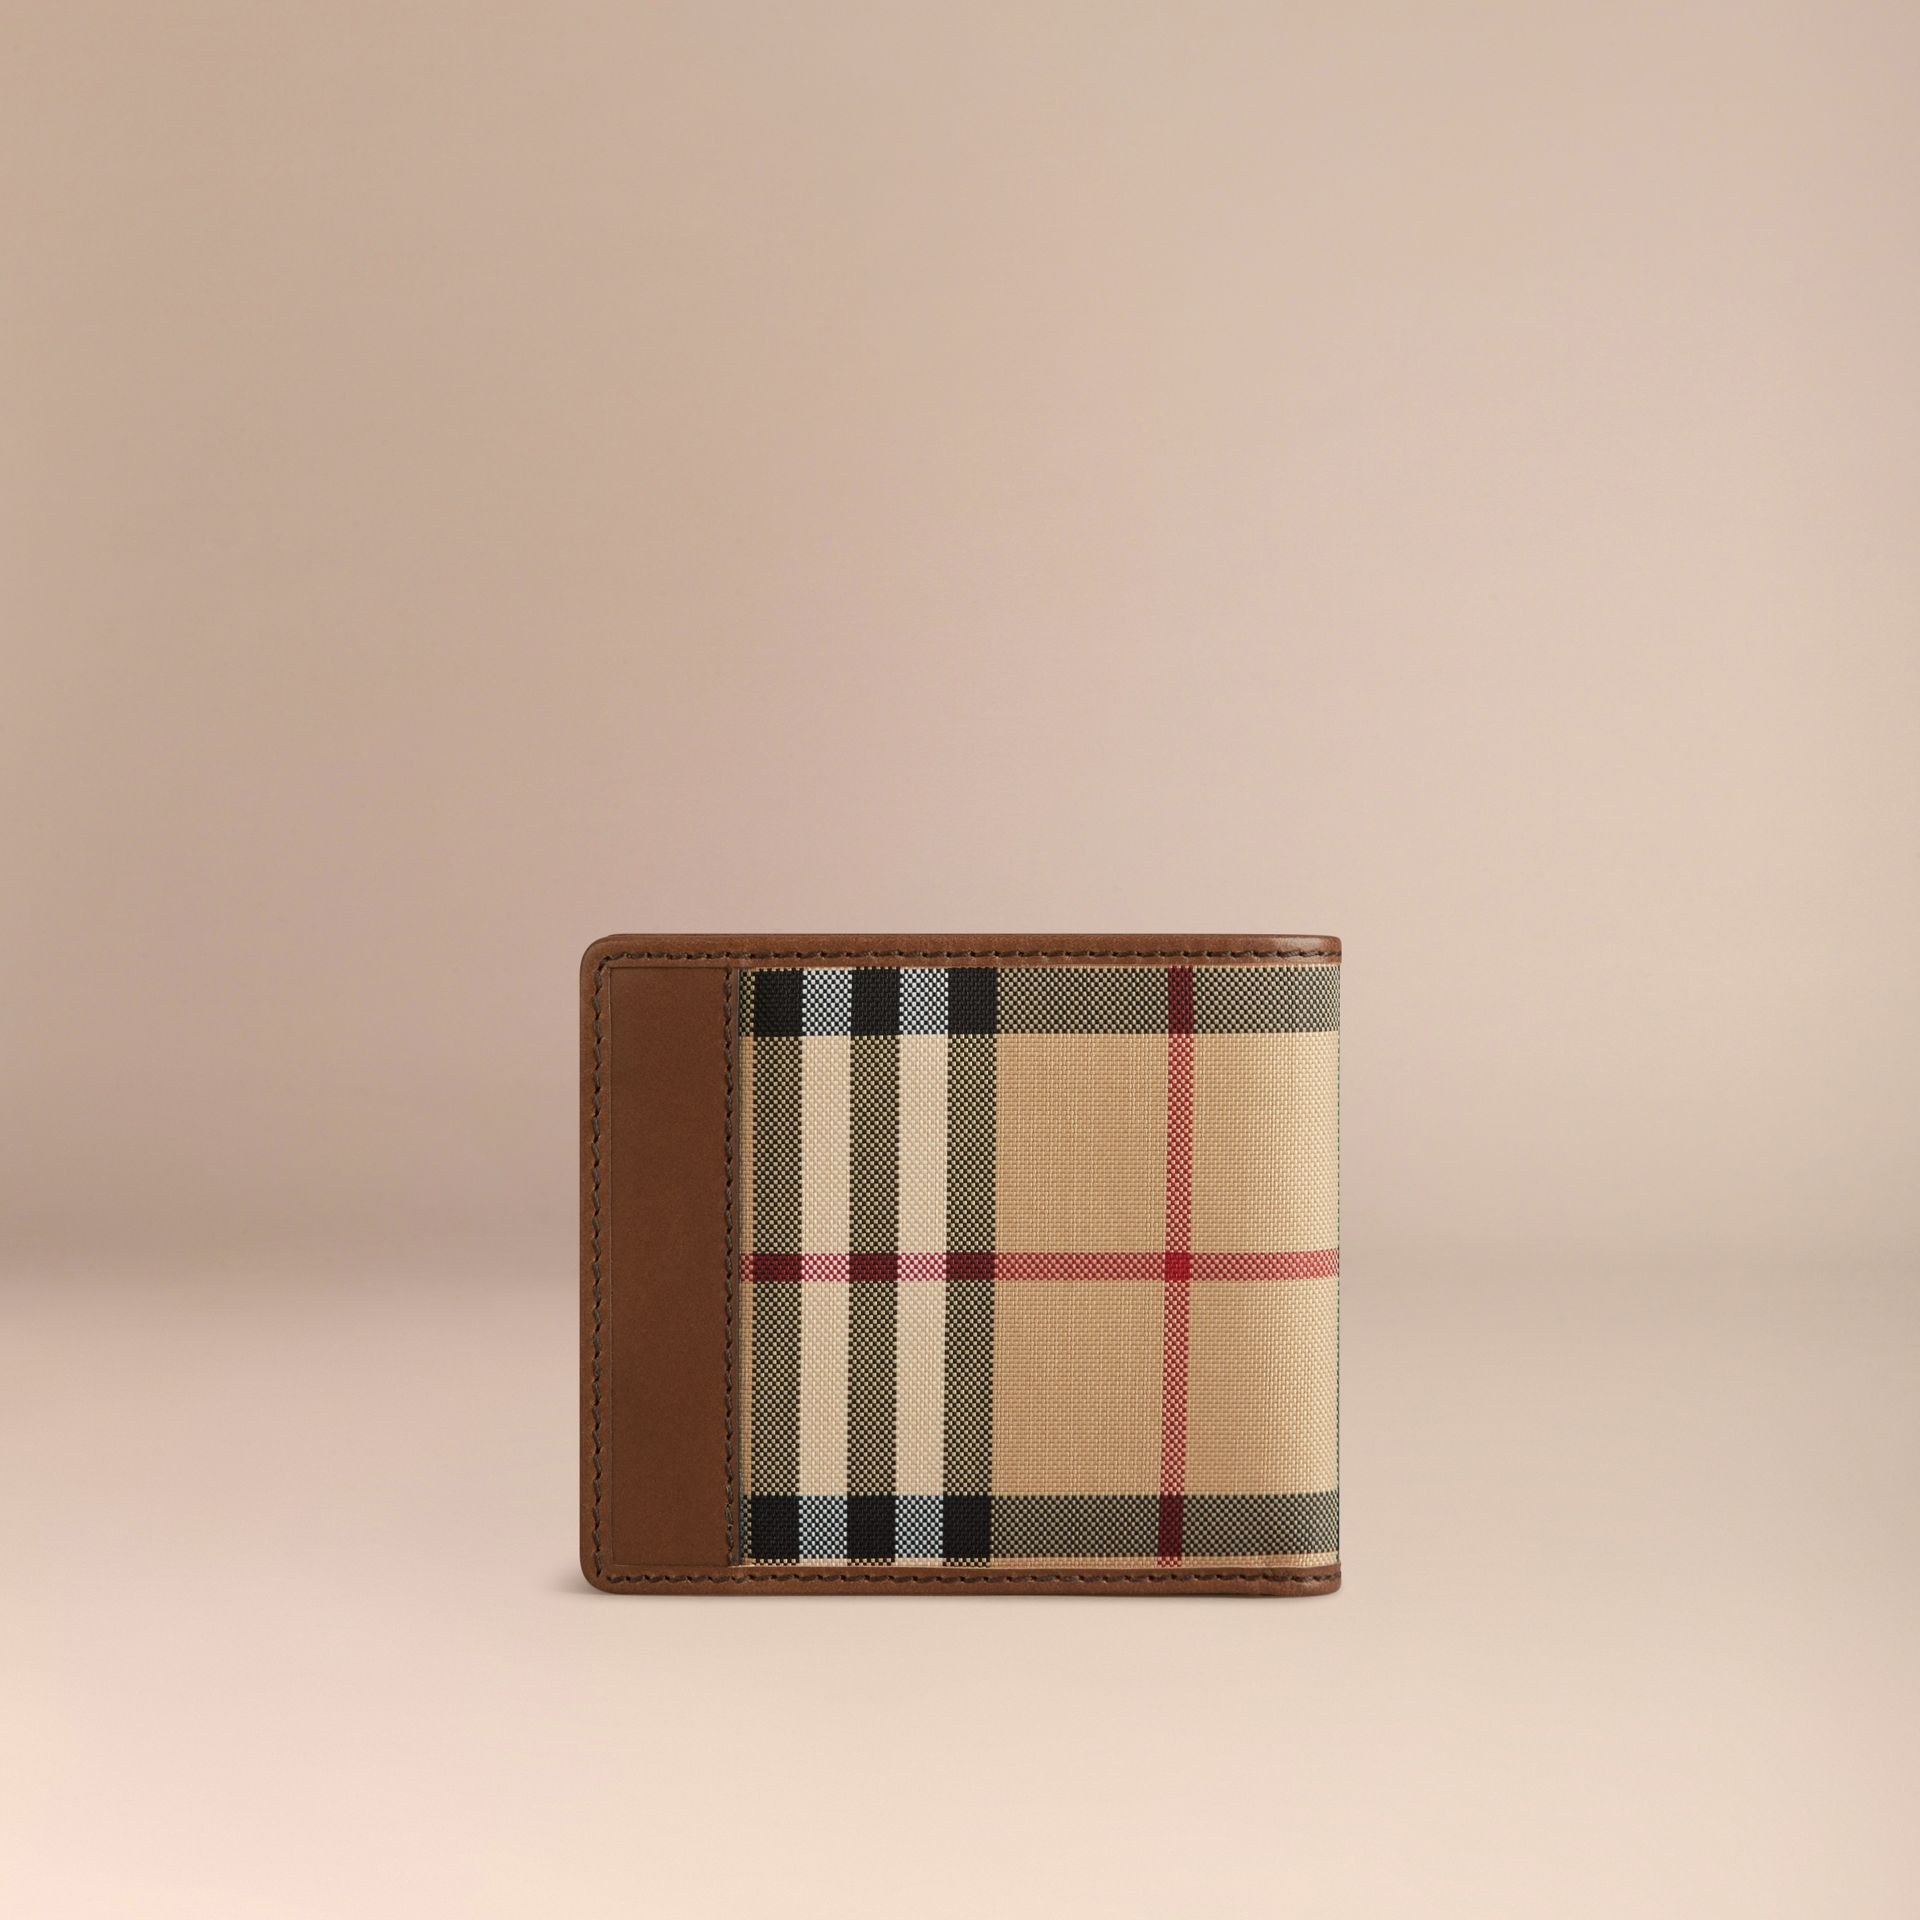 Horseferry Check International Bifold Wallet in Tan - gallery image 3